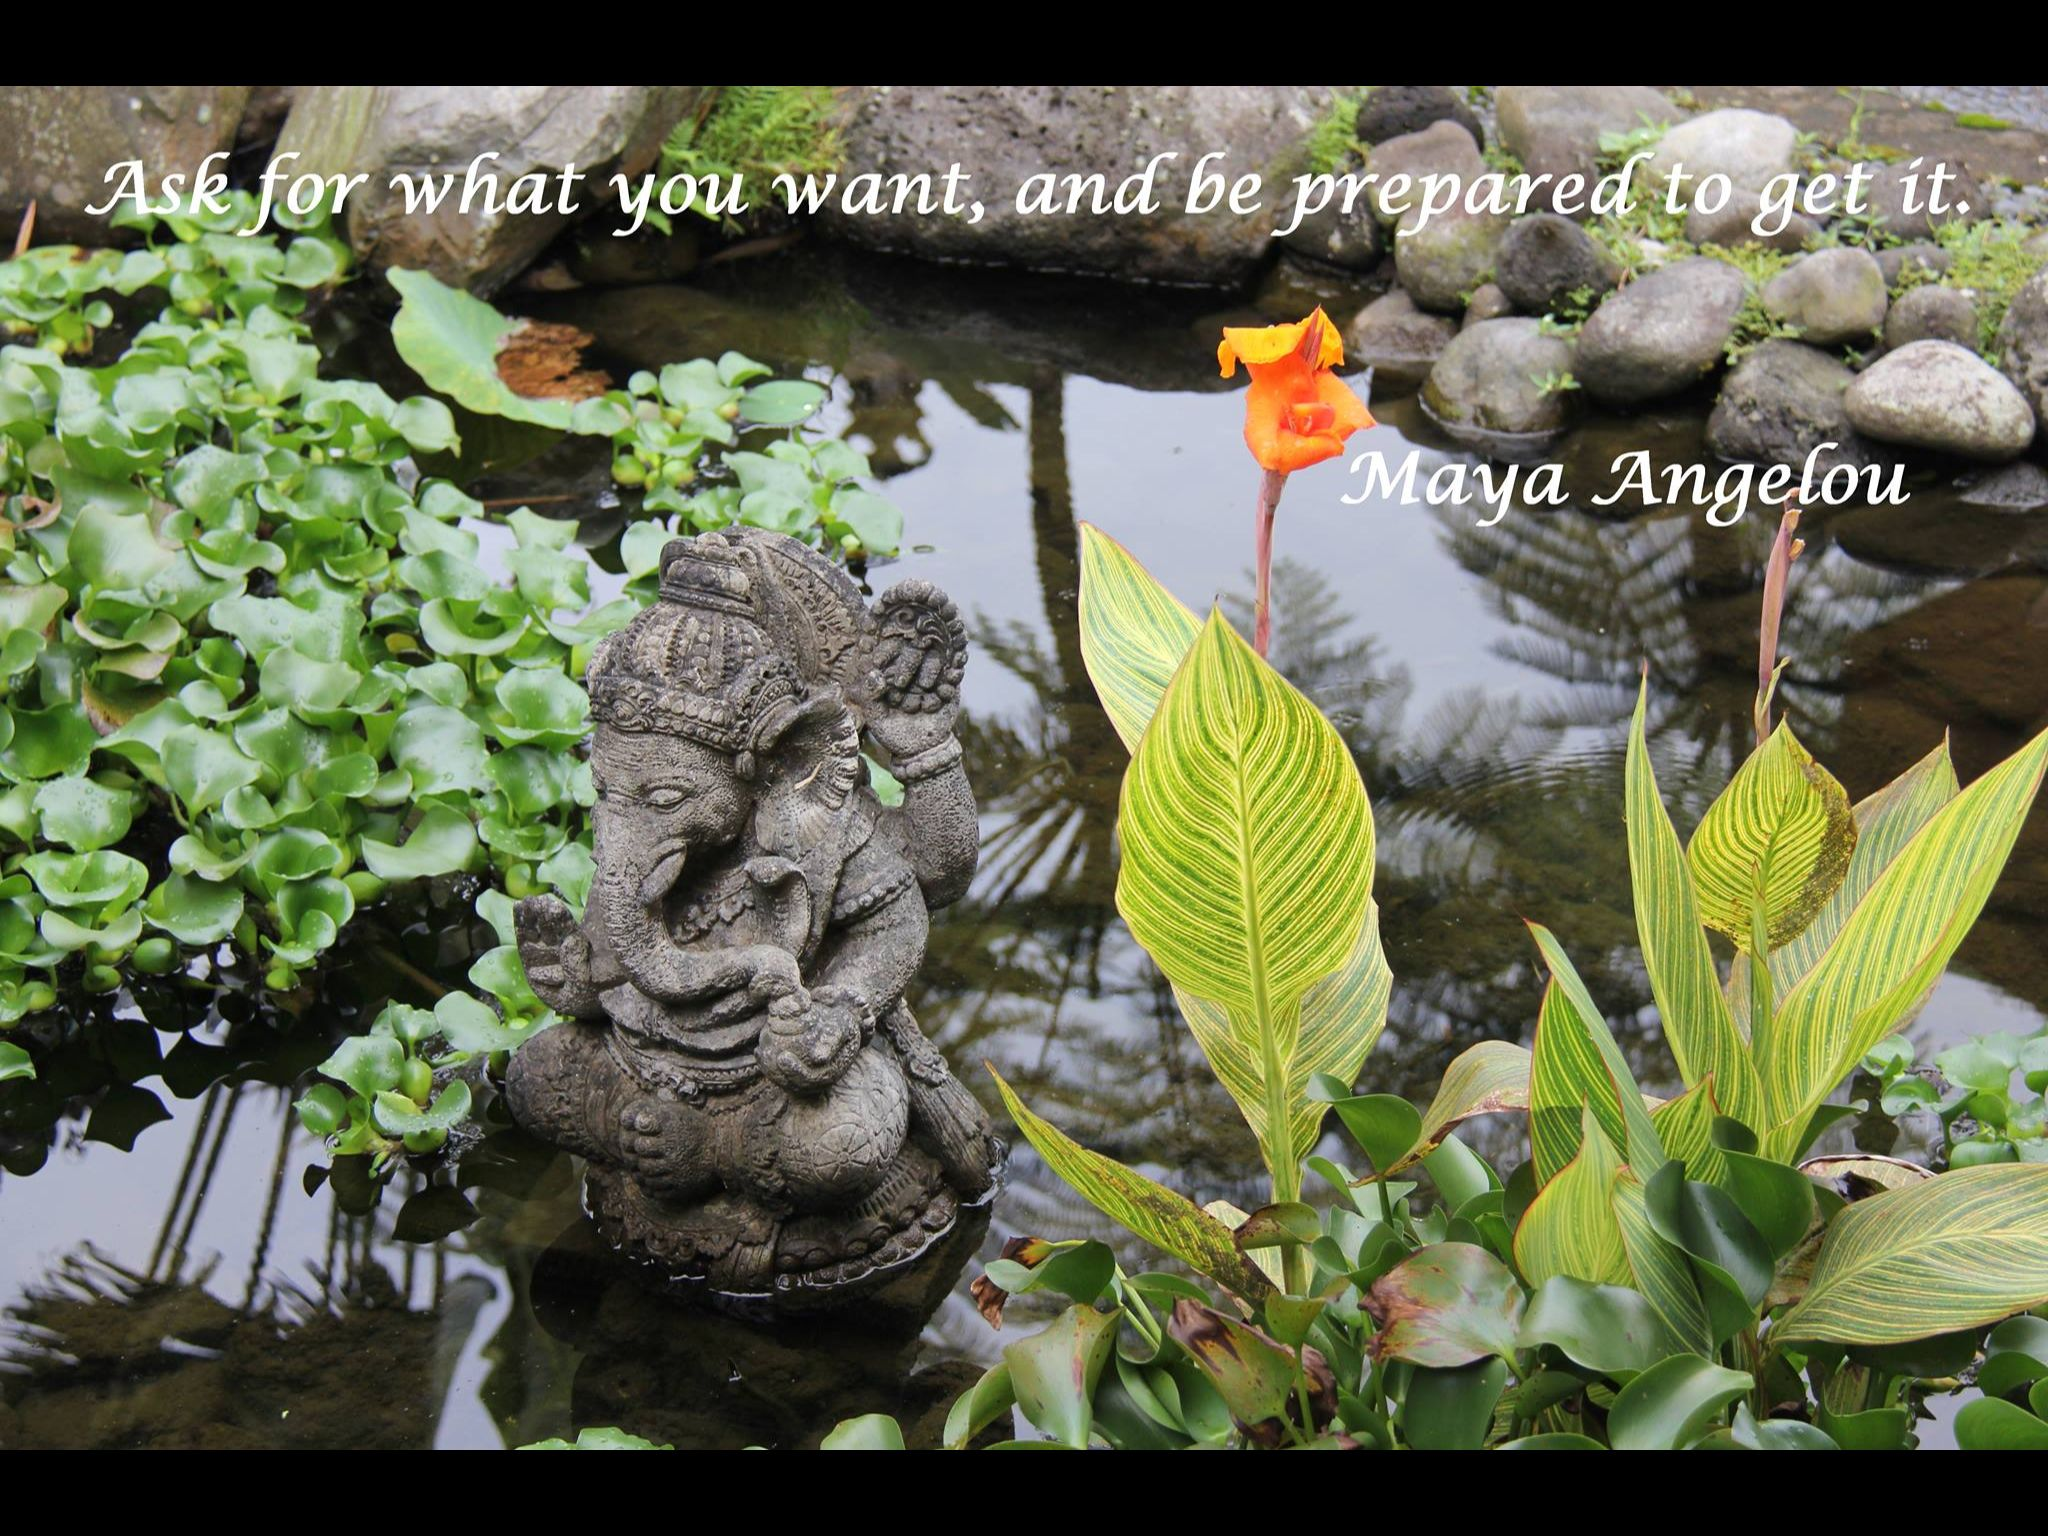 Ask for what you want, and be prepared to get it. Maya Angelou